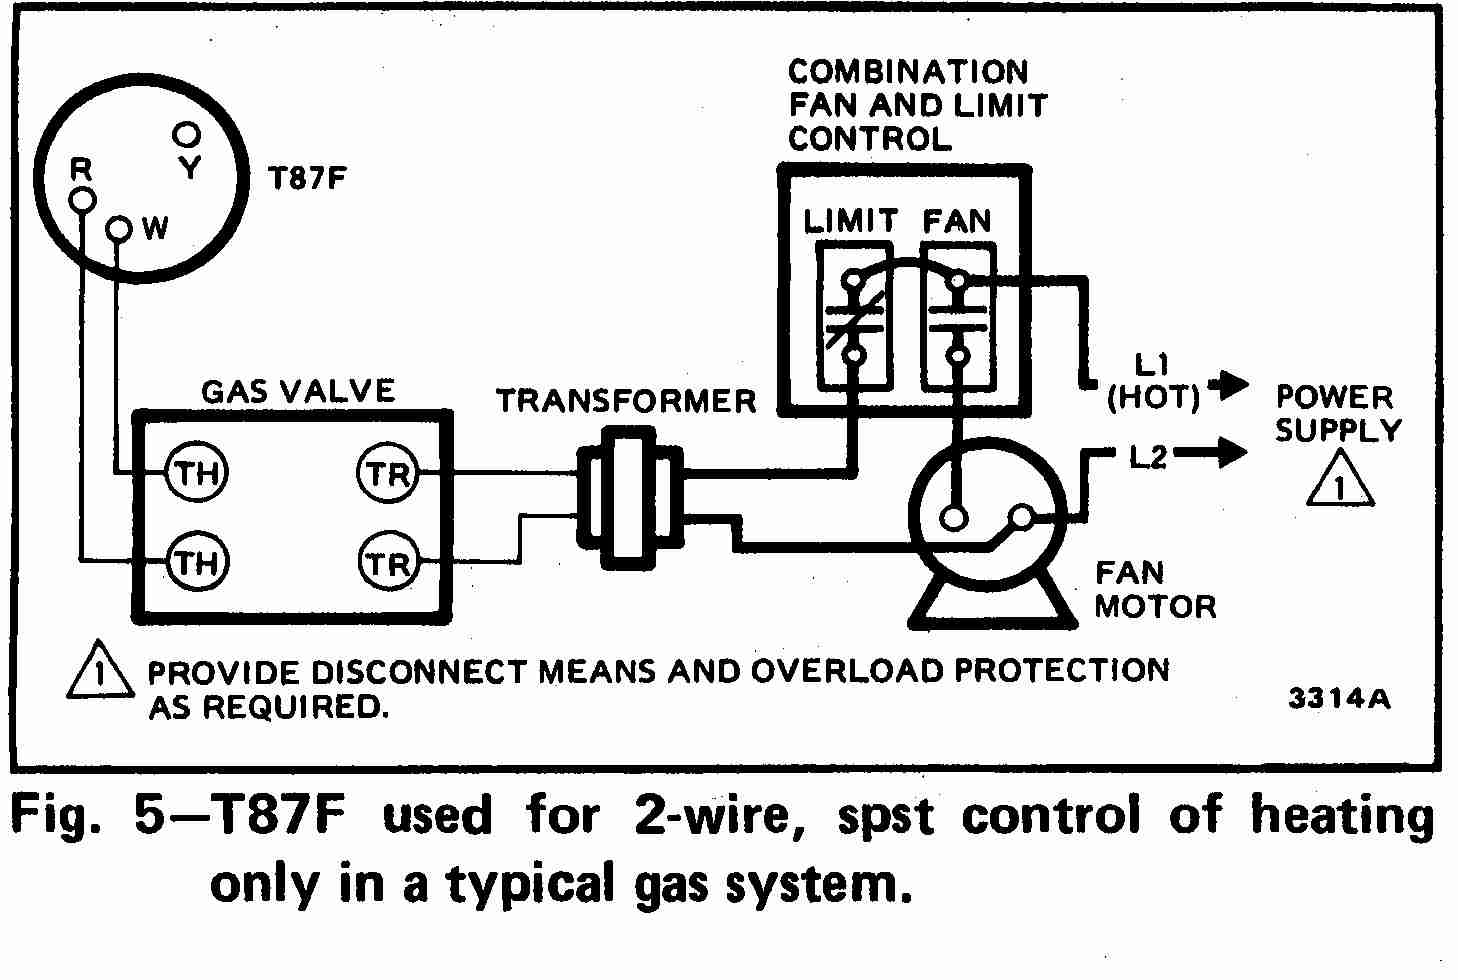 TT_T87F_0002_2Wg_DJF mercury thermostat wiring diagram trane thermostat wiring diagram Honeywell Thermostat Wiring Diagram at n-0.co